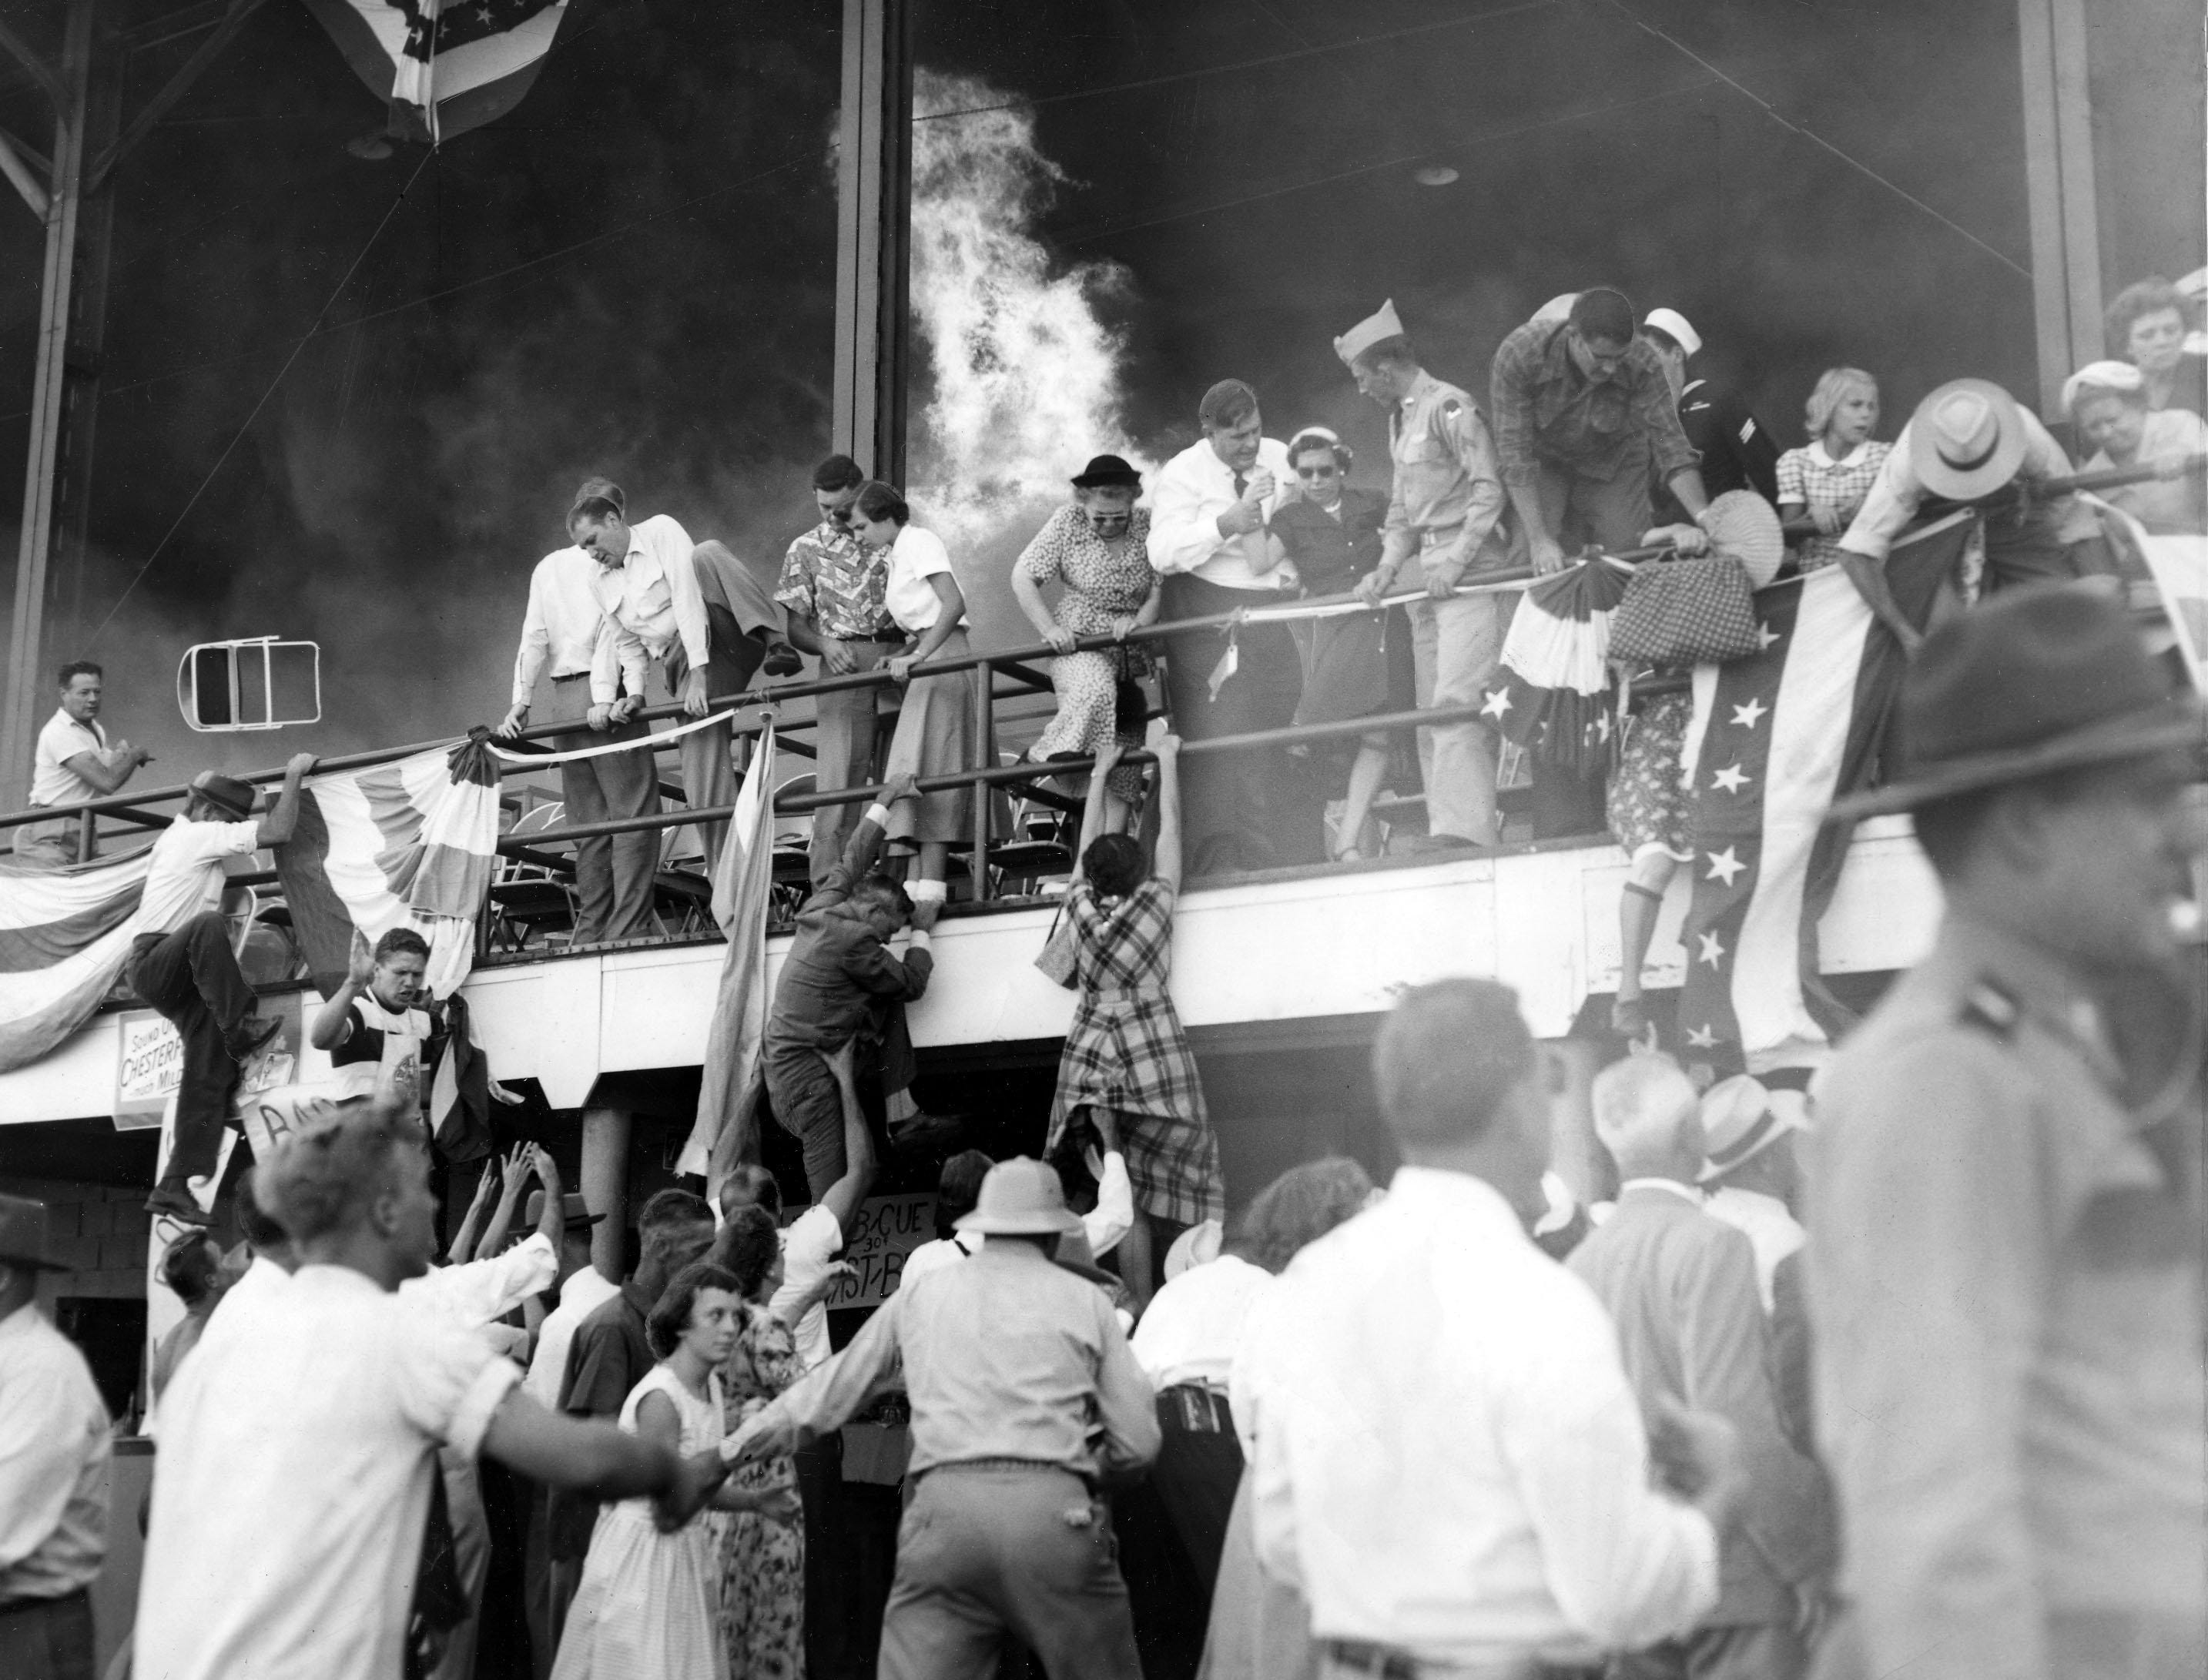 FIRE CAME to the Kentucky State Fairgrounds in 1952. This was the scene on September 11 when the grandstand caught fire as 3,000 spectators waited for a water show to begin. No one was seriously injured. Damage was estimated at $70,000 to $80,000. The fire was believed caused by a cigarette wedged between timbers.